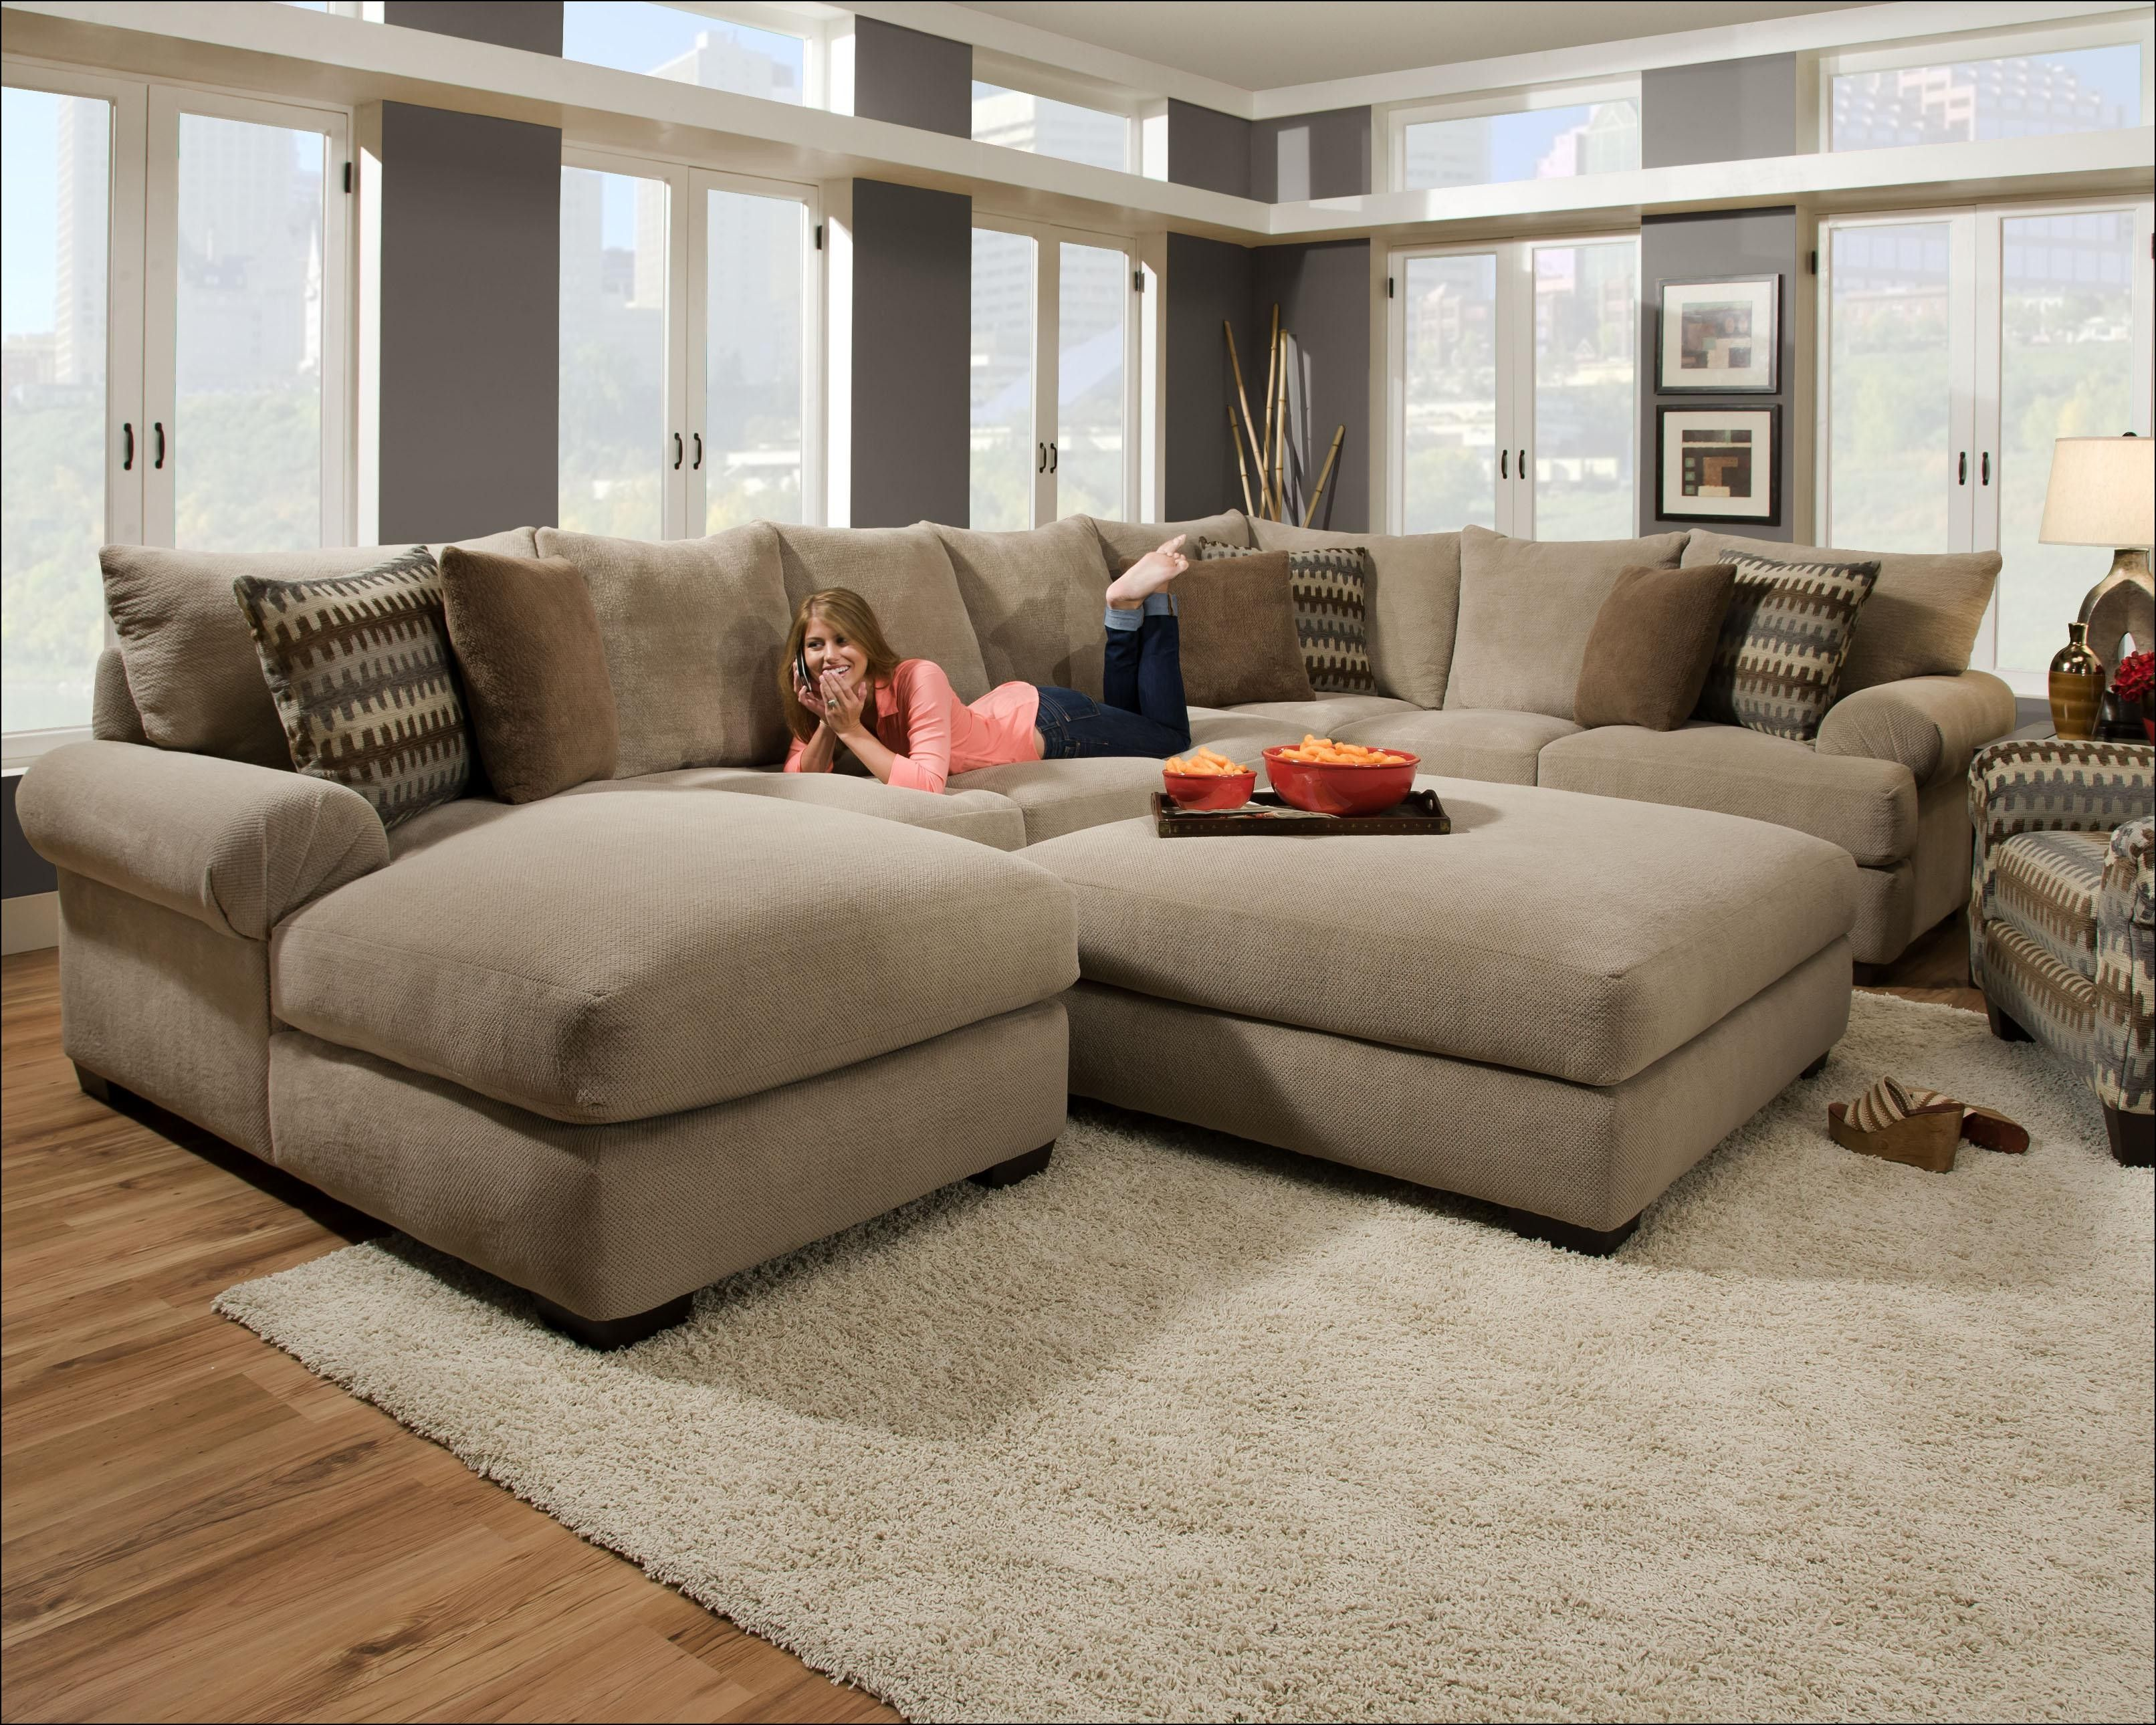 oversized eye room bean and extra together huge sectional encouraging your tall with nice d deepsofa seated gh sofas deep sofa overstuffed couch bag large big luxury couches movie lovesac chic